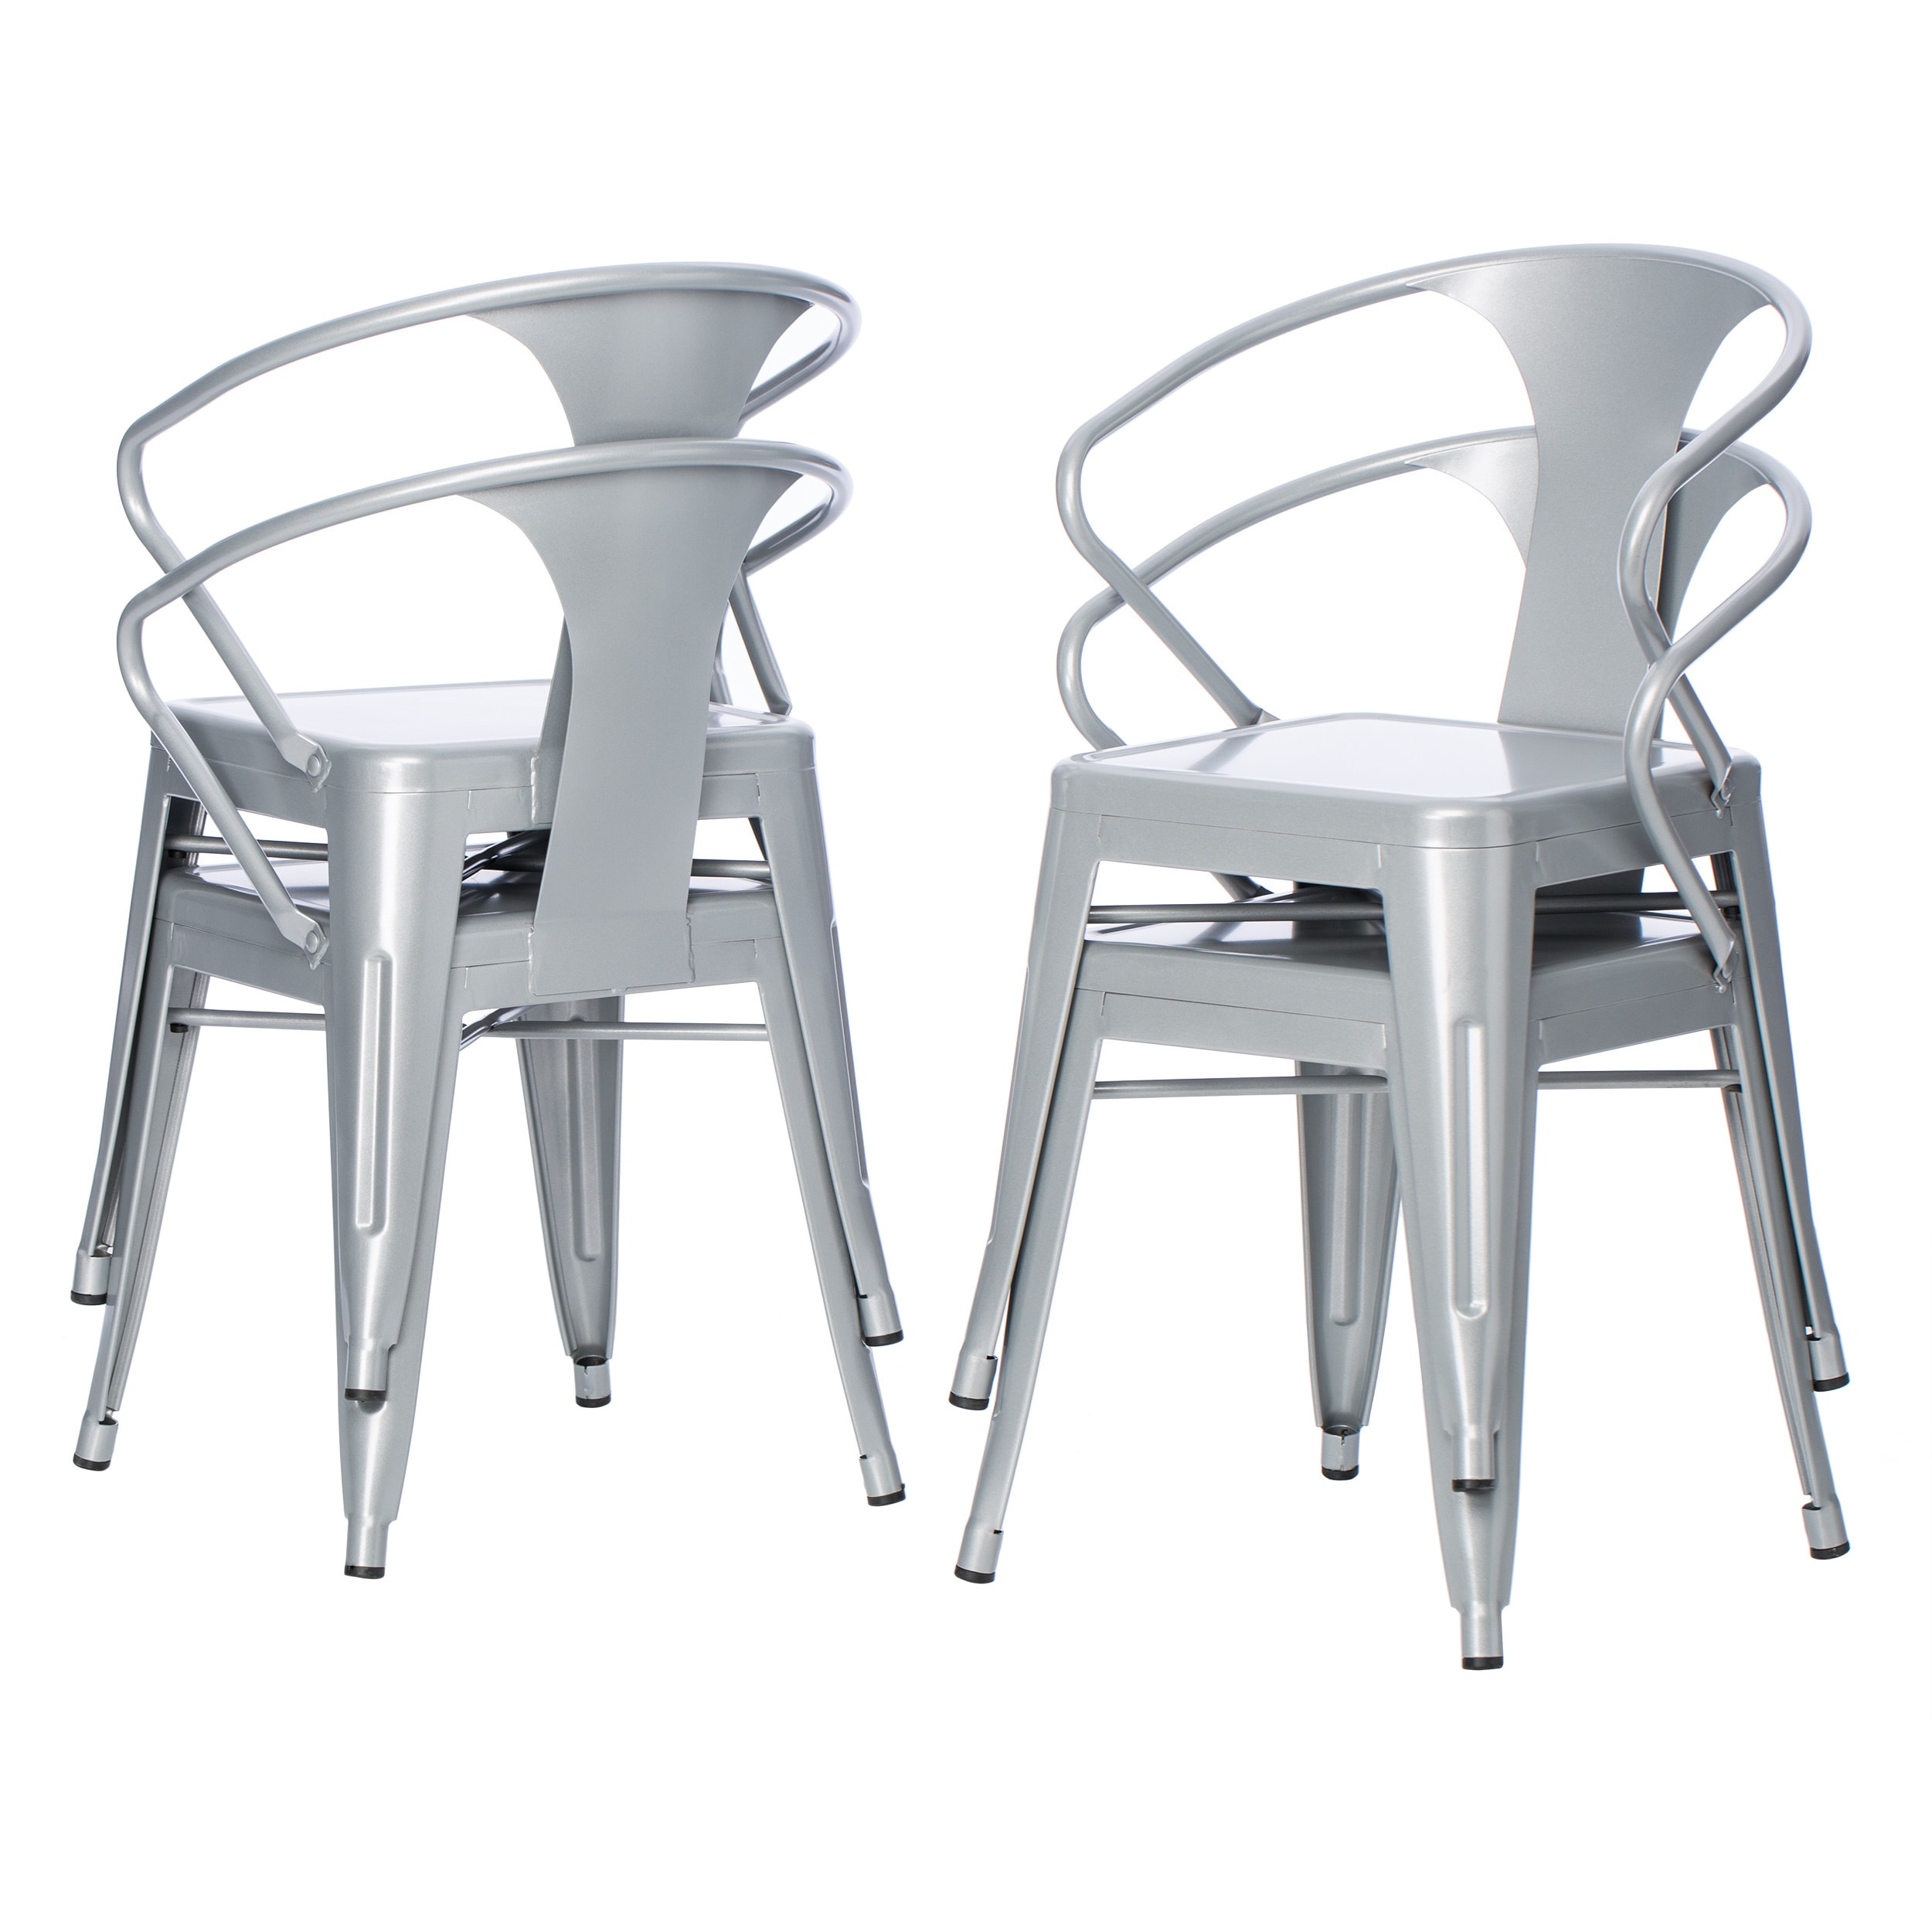 Perfect Carbon Loft Silver Tabouret Stacking Chairs (Set Of 4)   Free Shipping  Today   Overstock   12950045